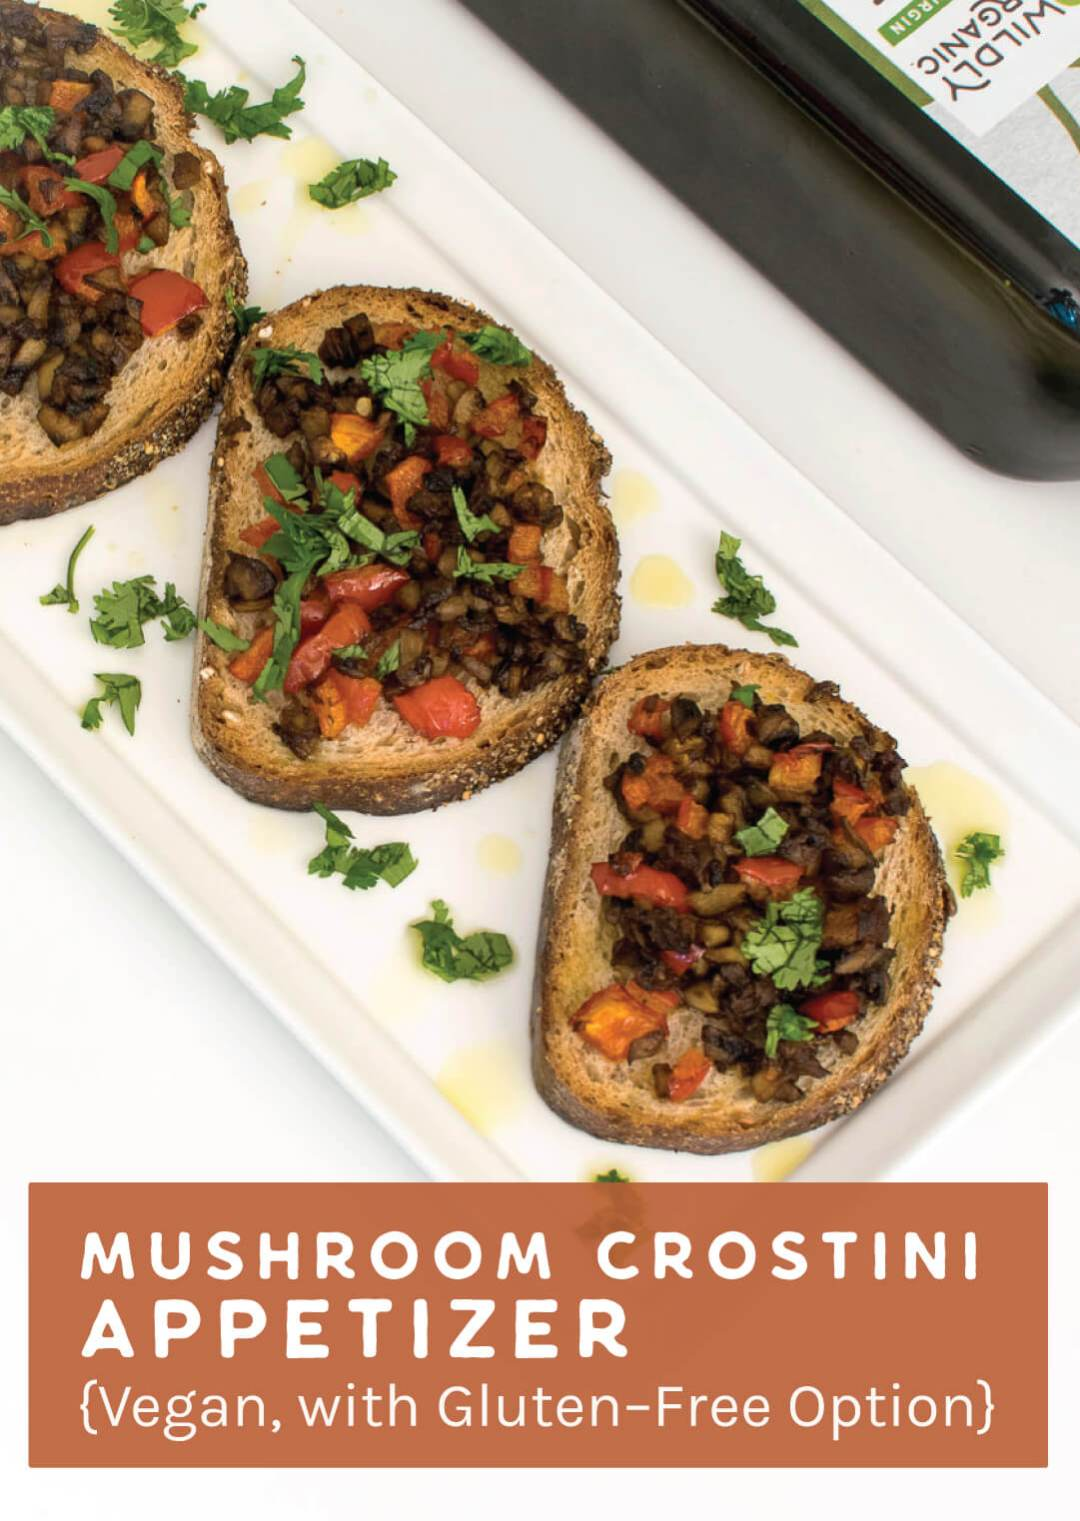 Mushroom Crostini Appetizer {Vegan, with Gluten-Free Option}